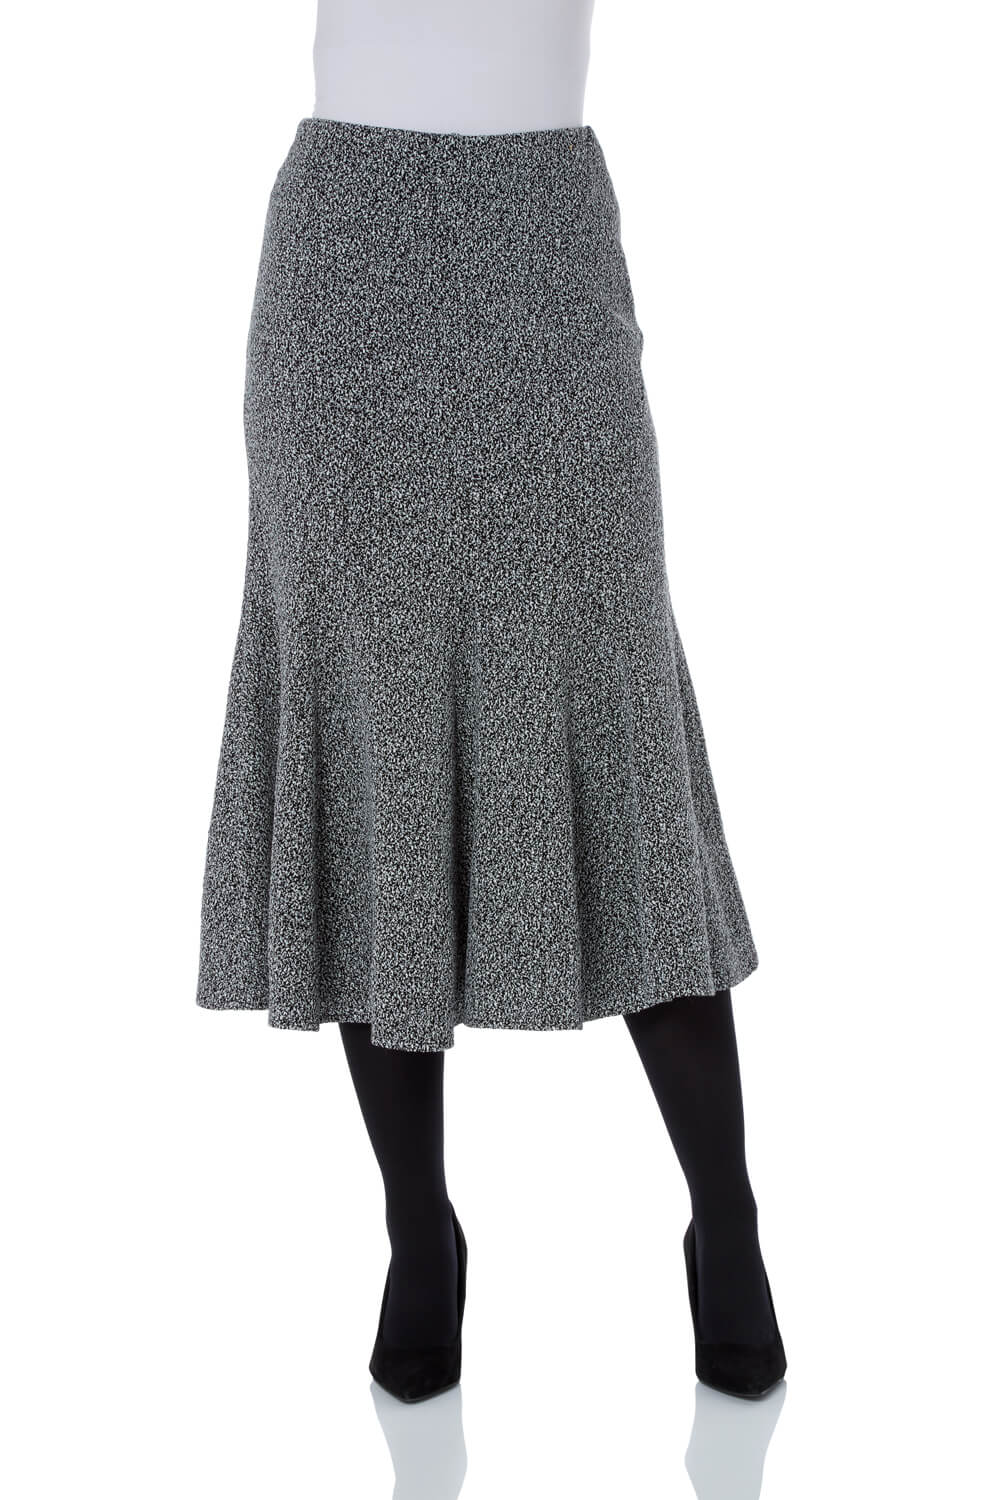 Roman-Originals-Women-Texture-Flared-Skirt-in-Grey-sizes-10-20